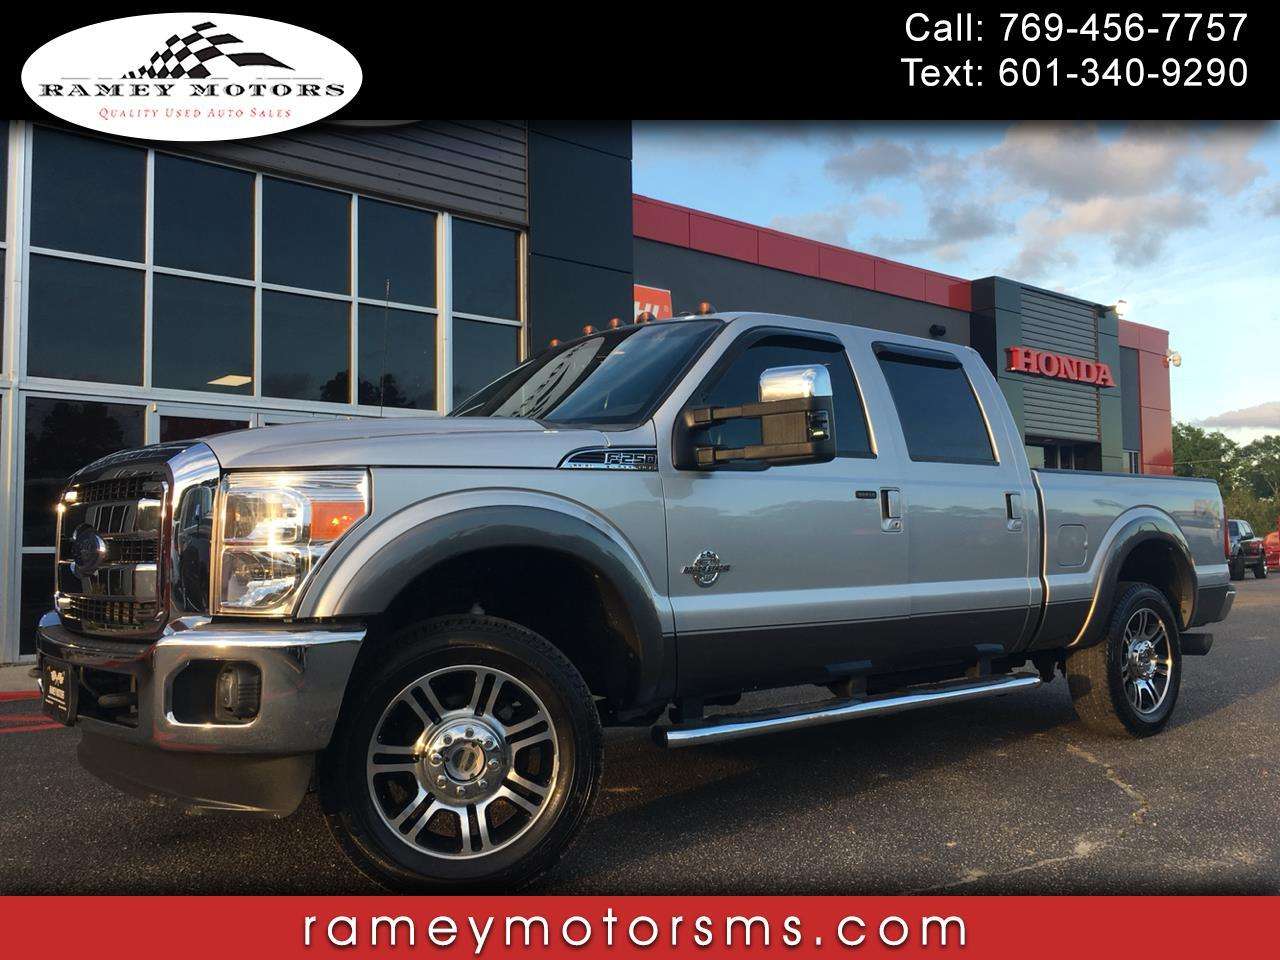 2012 Ford Super Duty F-250 SRW 4WD CREWCAB LARIAT DPF DELETED